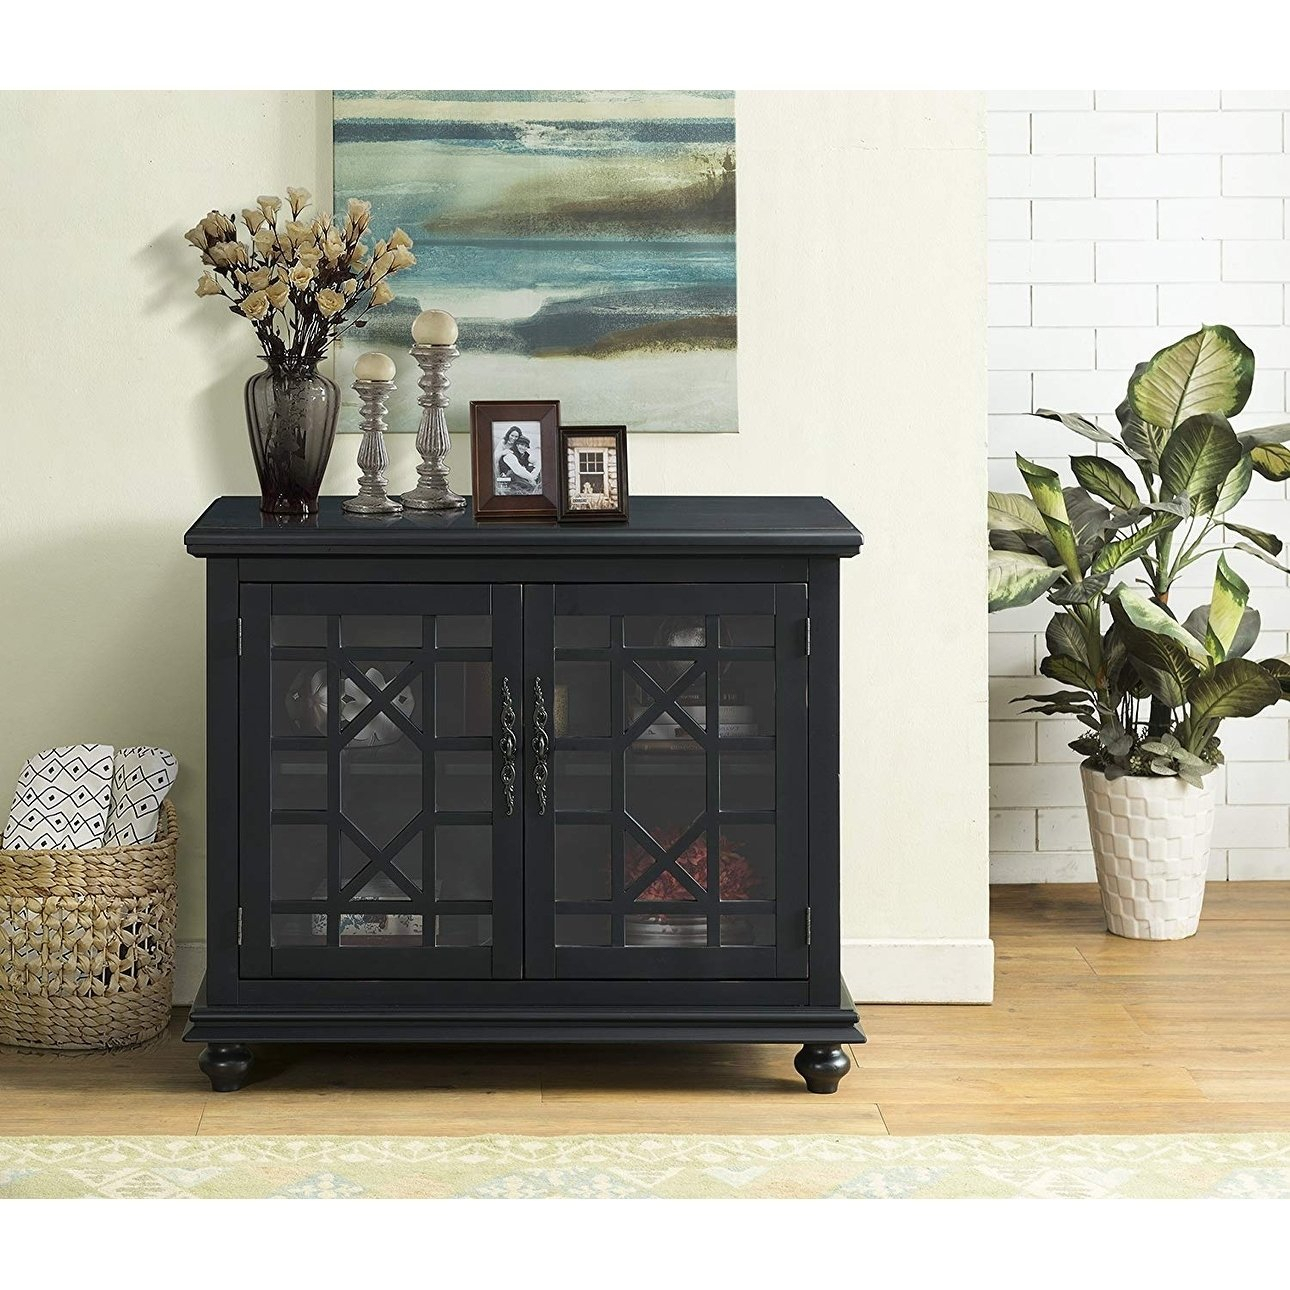 Shop Wooden Tv Stand With Trellis Detailed Doors, Antique Black throughout Maddy 70 Inch Tv Stands (Image 24 of 30)